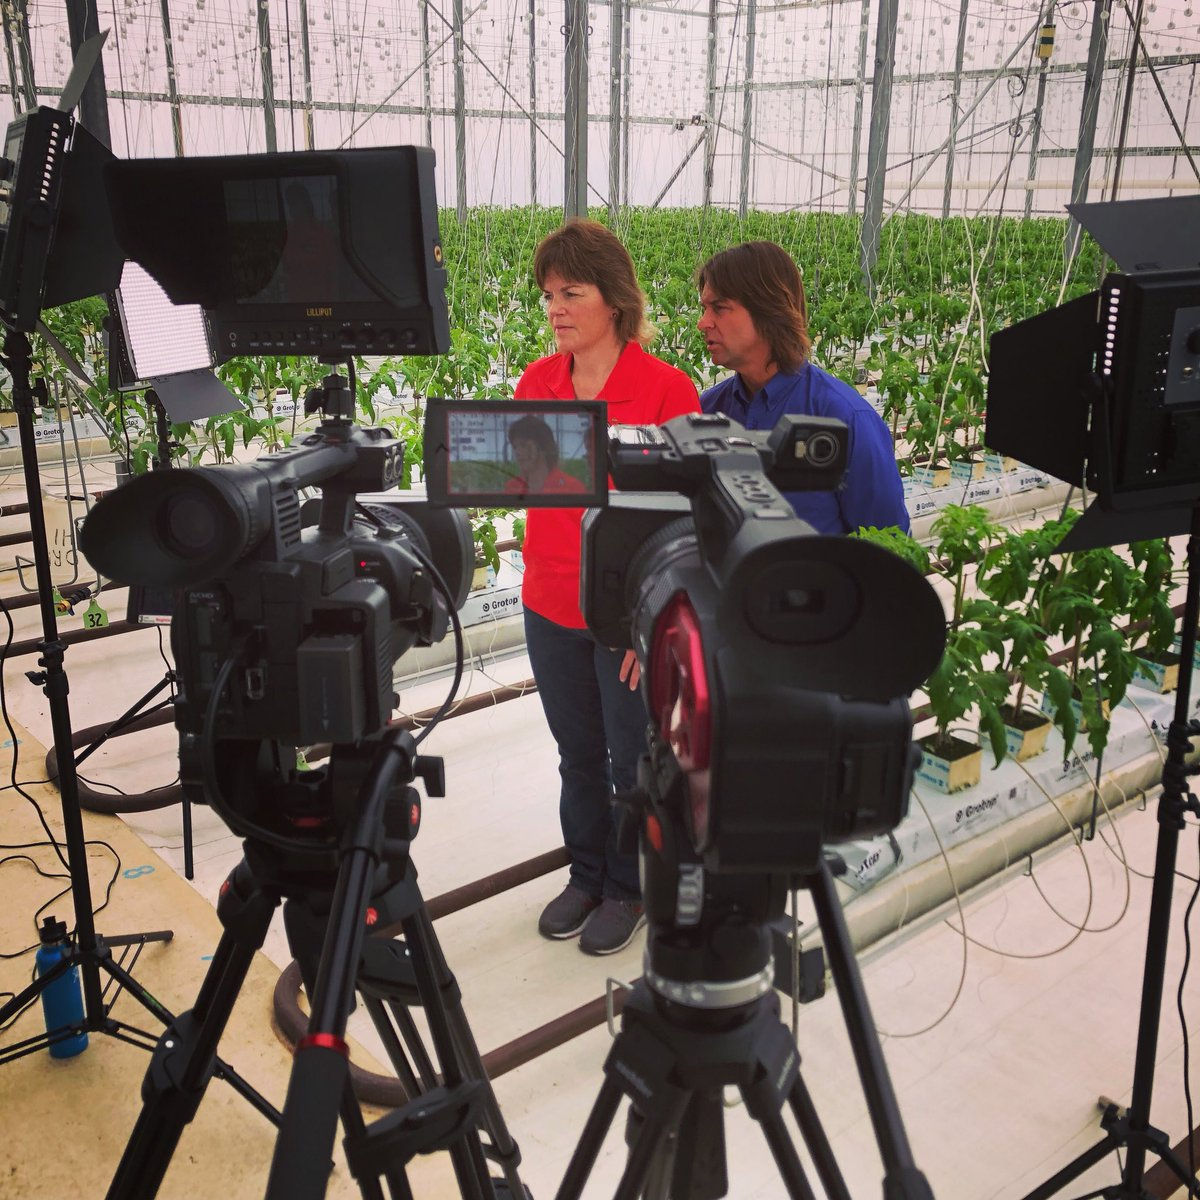 test Twitter Media - RT @A_SquaredComm: Had a great day filming @farmfreshnanton today! #video #videoproduction #asquaredtv #yycbiz https://t.co/O4rzmYWllJ